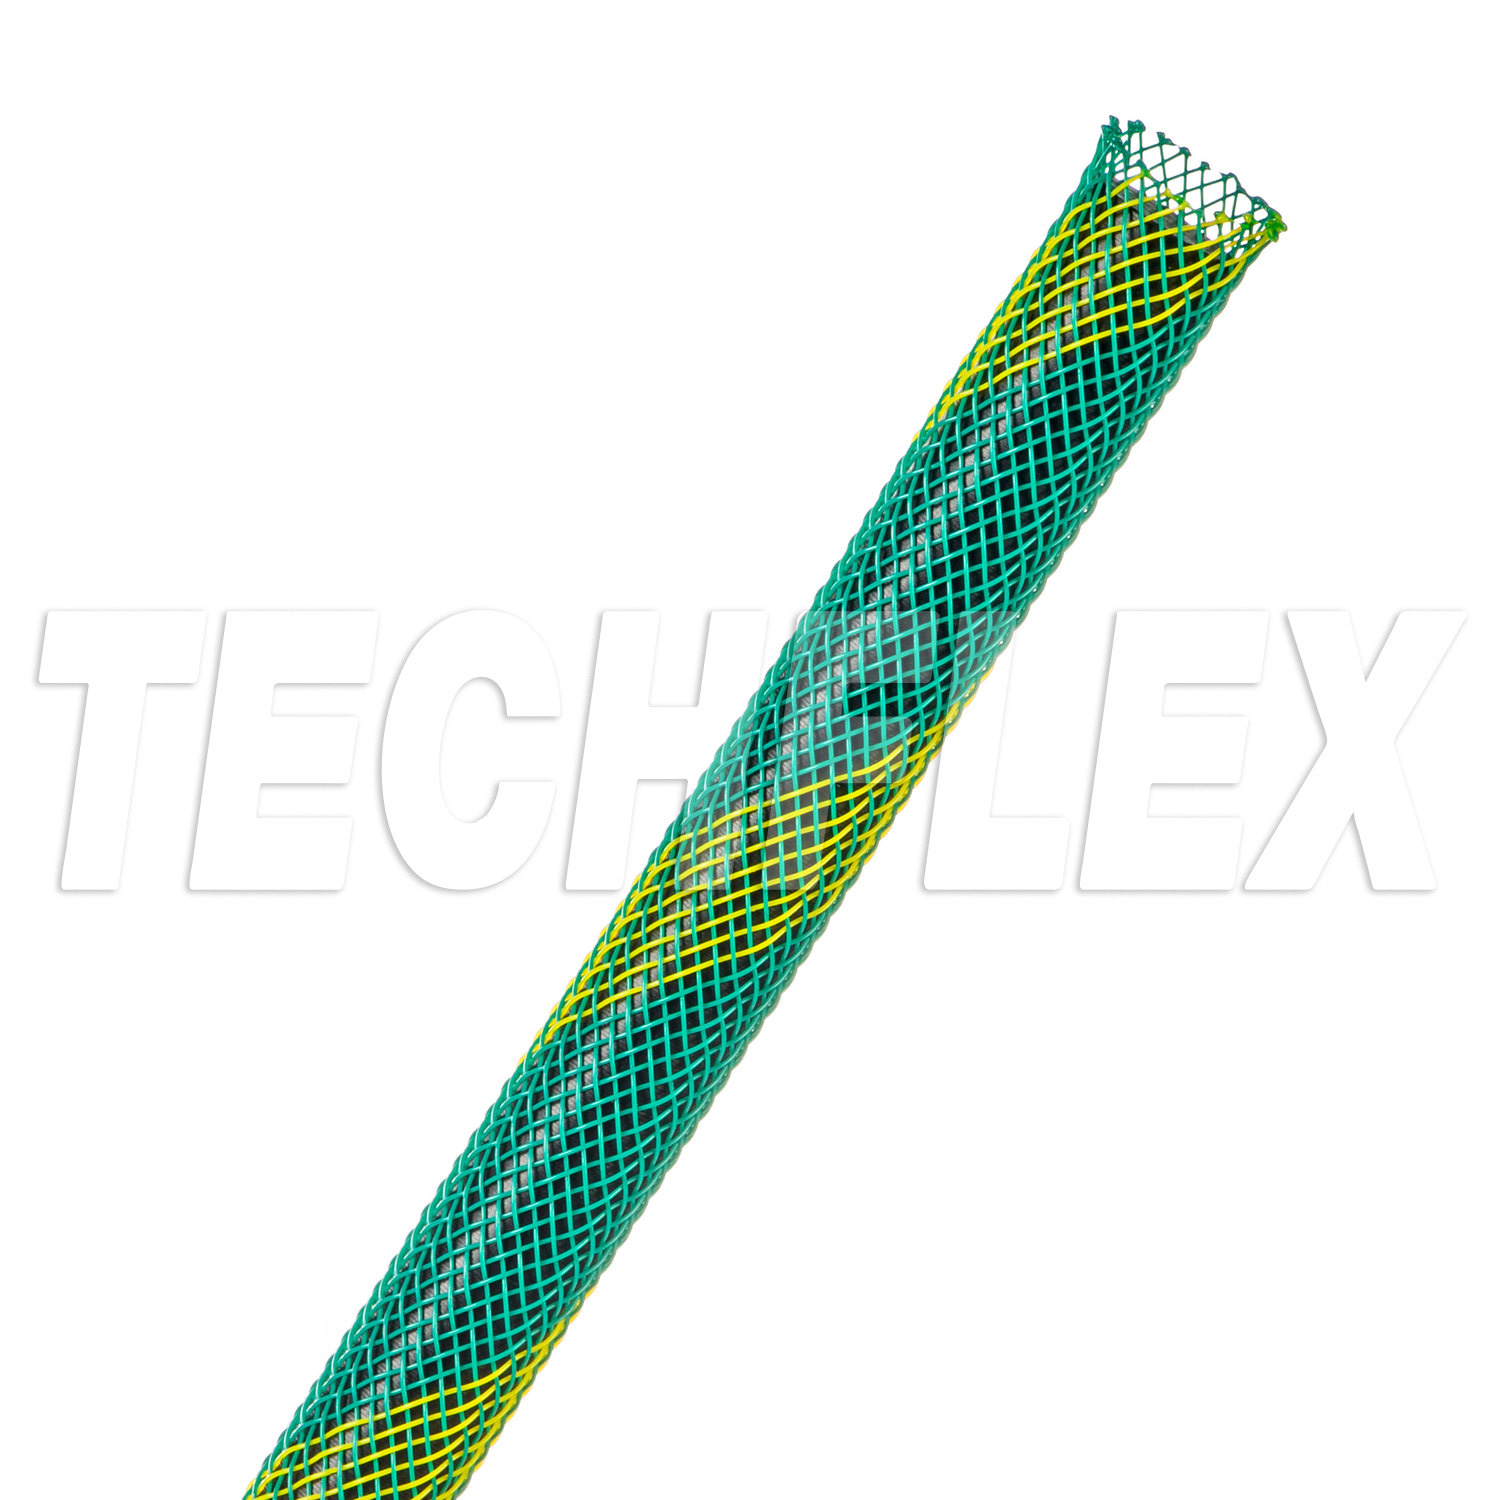 3/32In-1/4In Expandable Tubing 1000 Foot Roll (Groundwire) PET1-M-GD